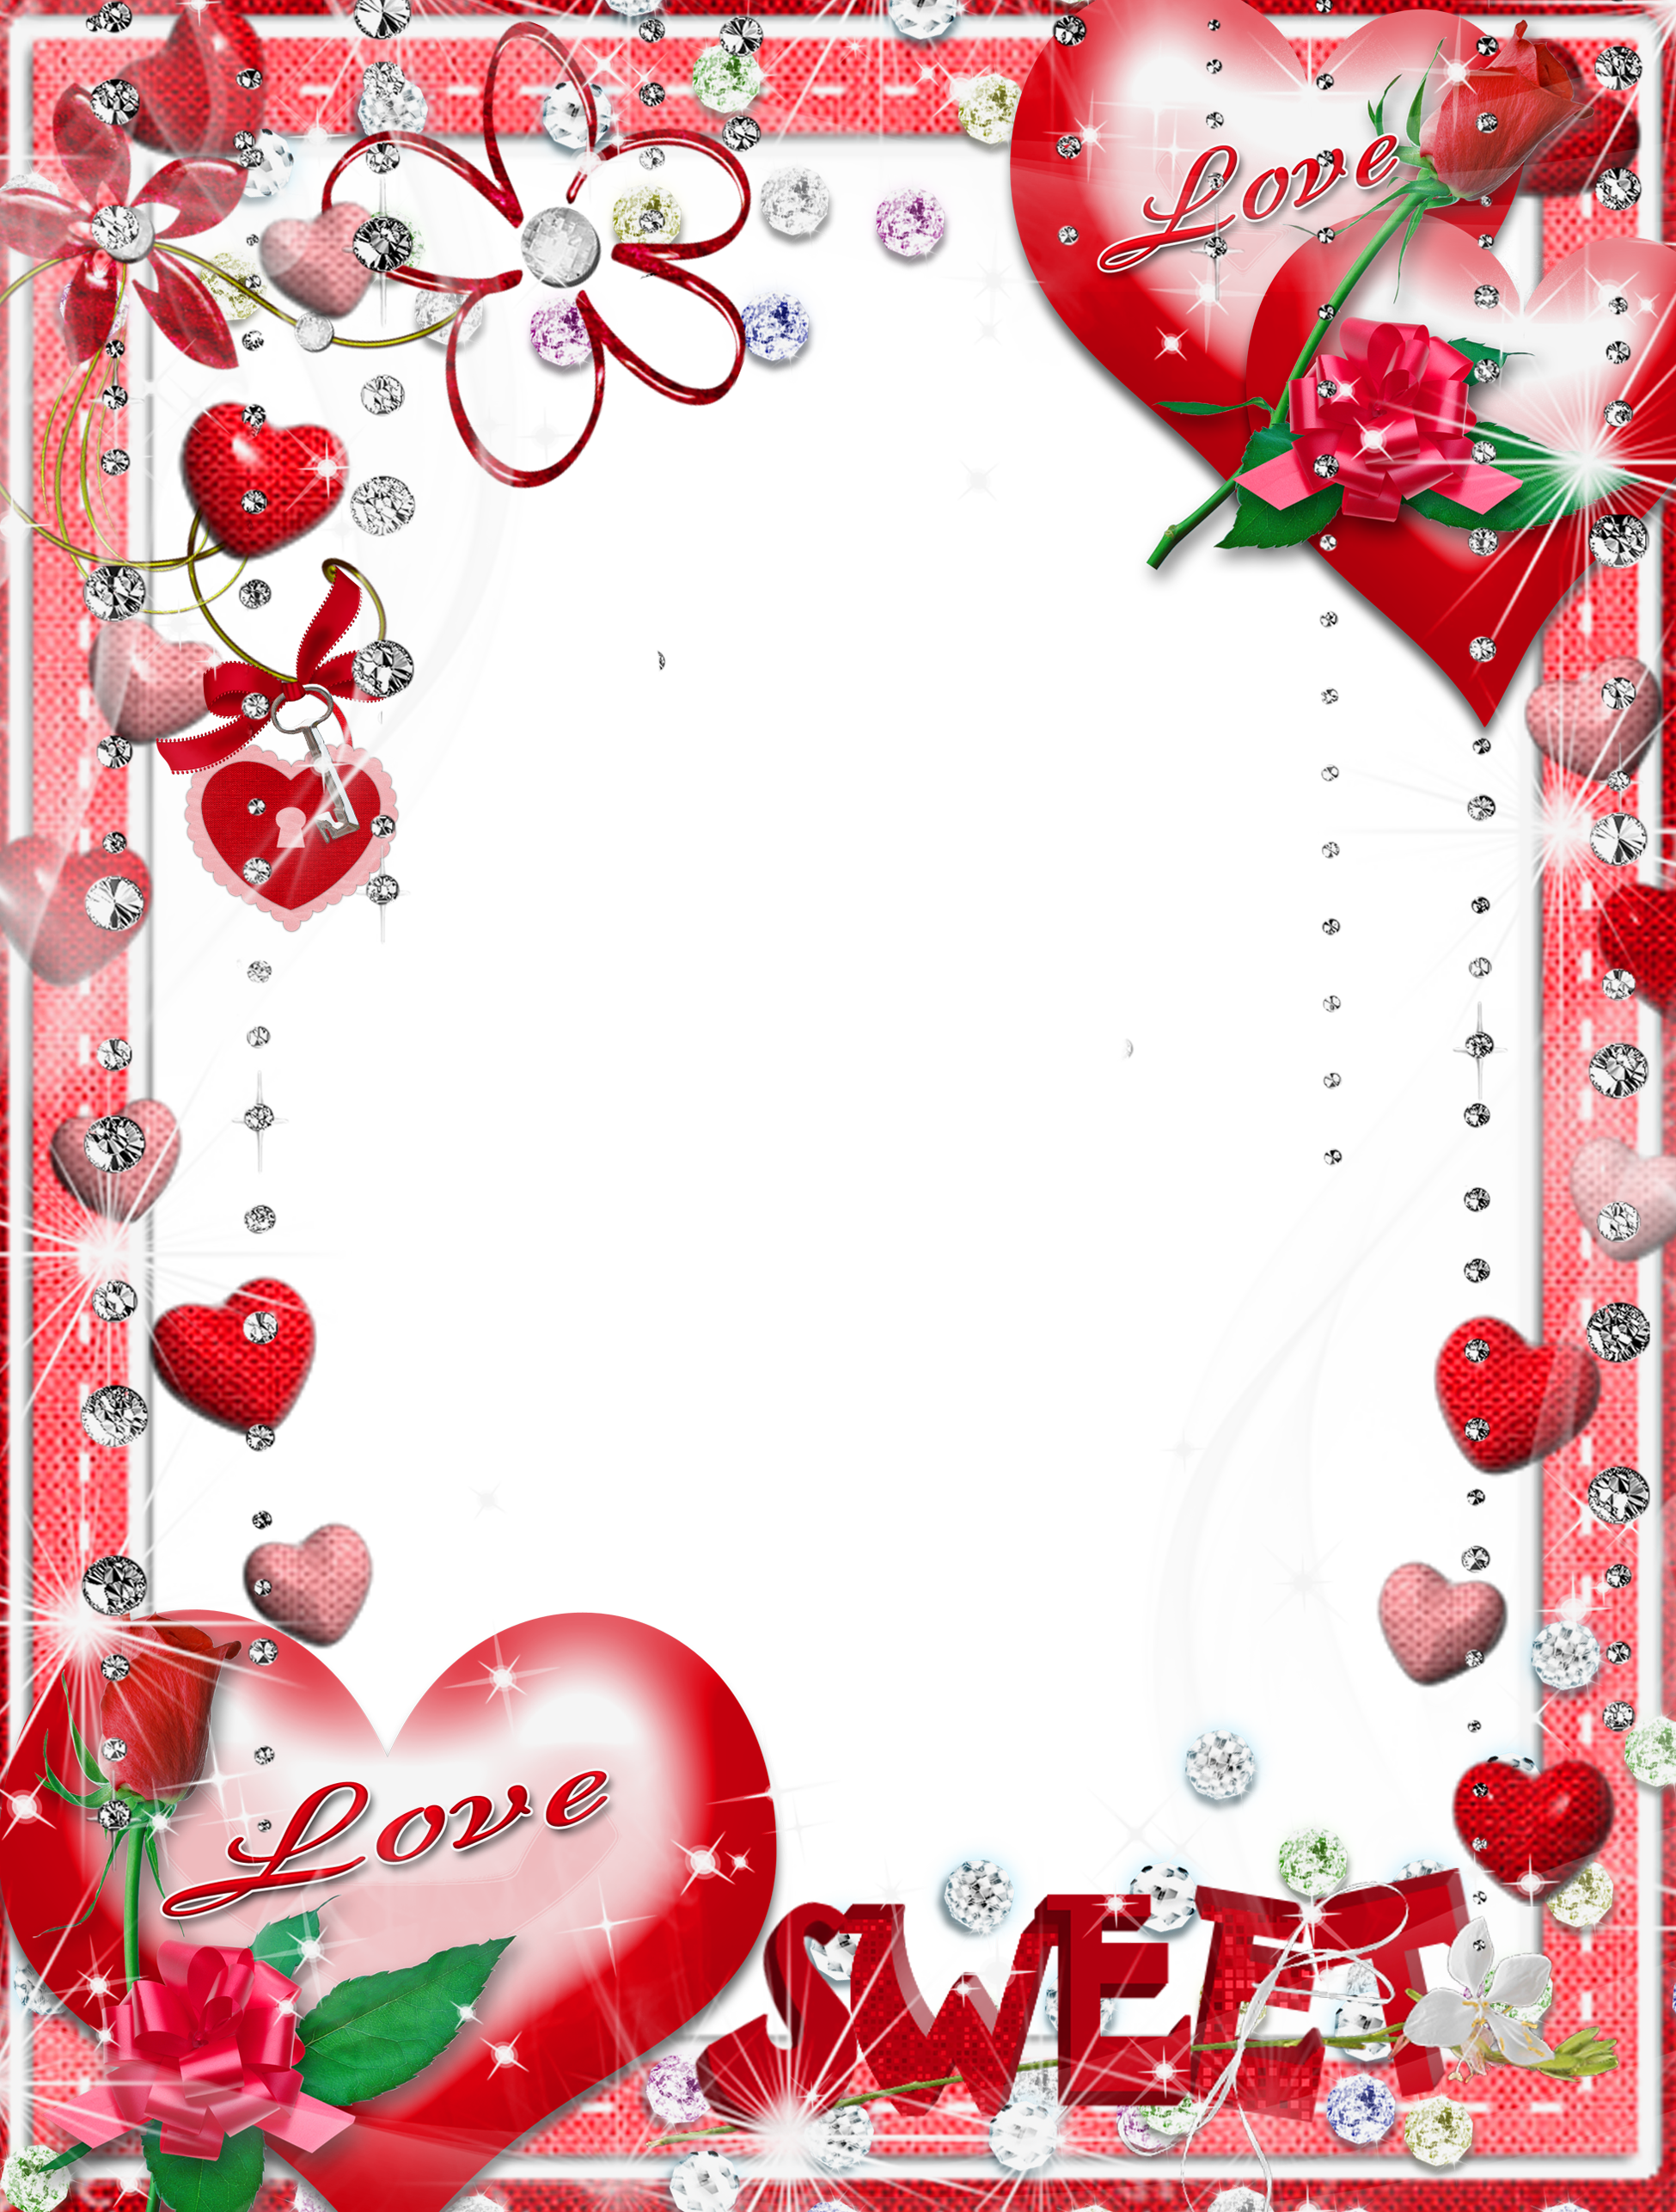 Love frame png. Sweet transparent photo gallery